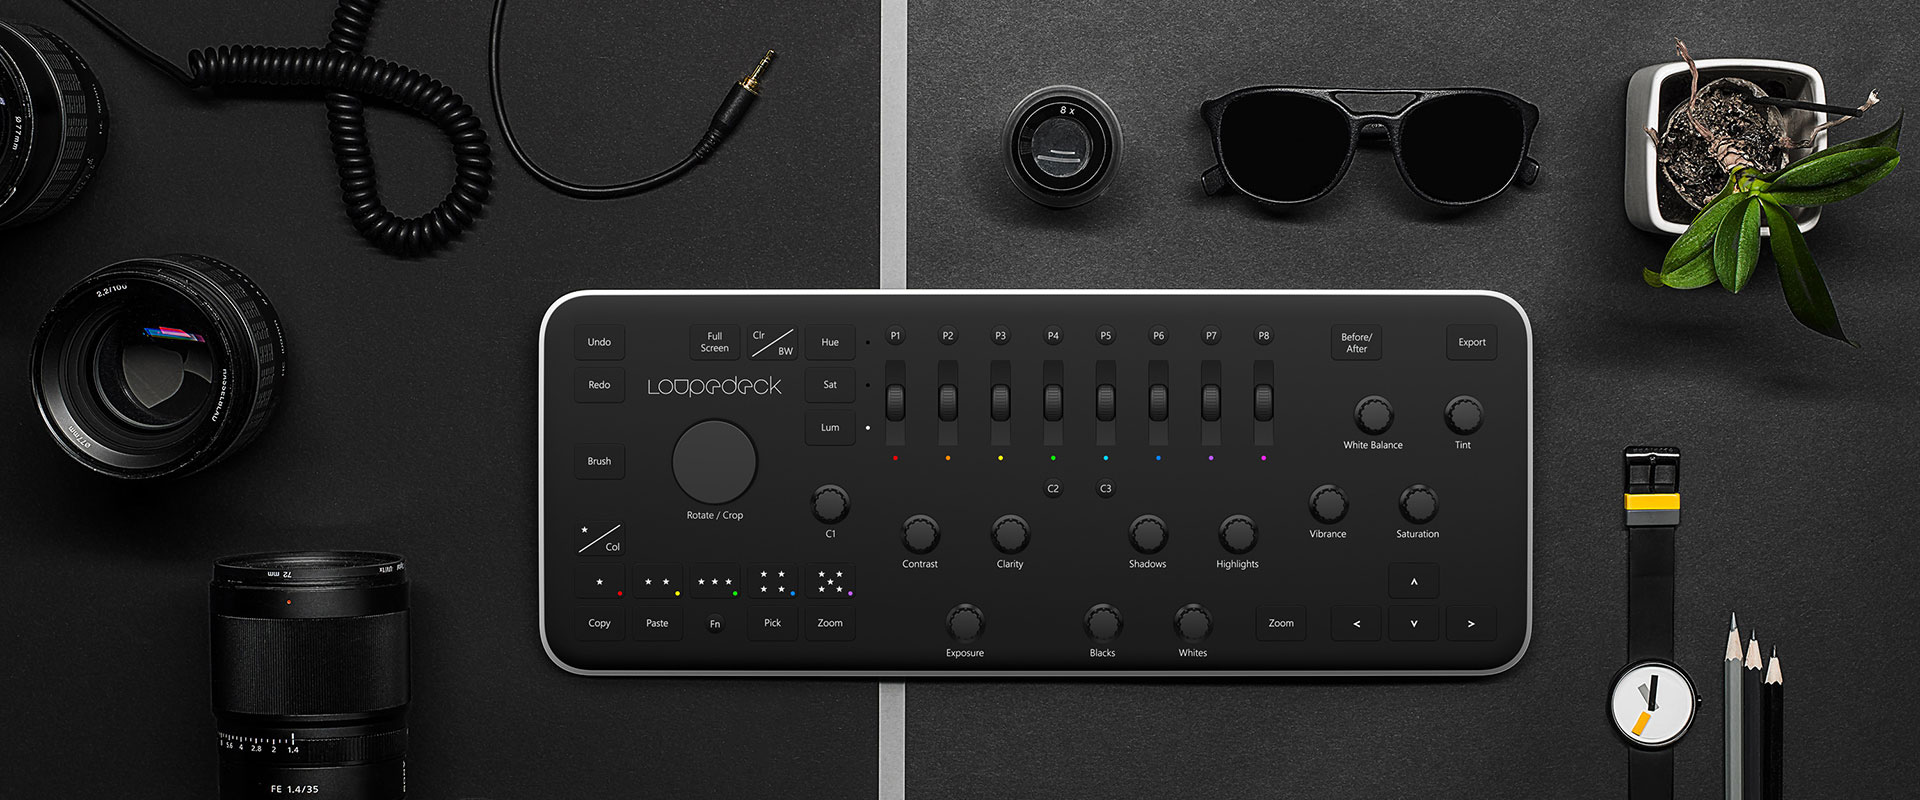 Loupedeck adobe lightroom konzola